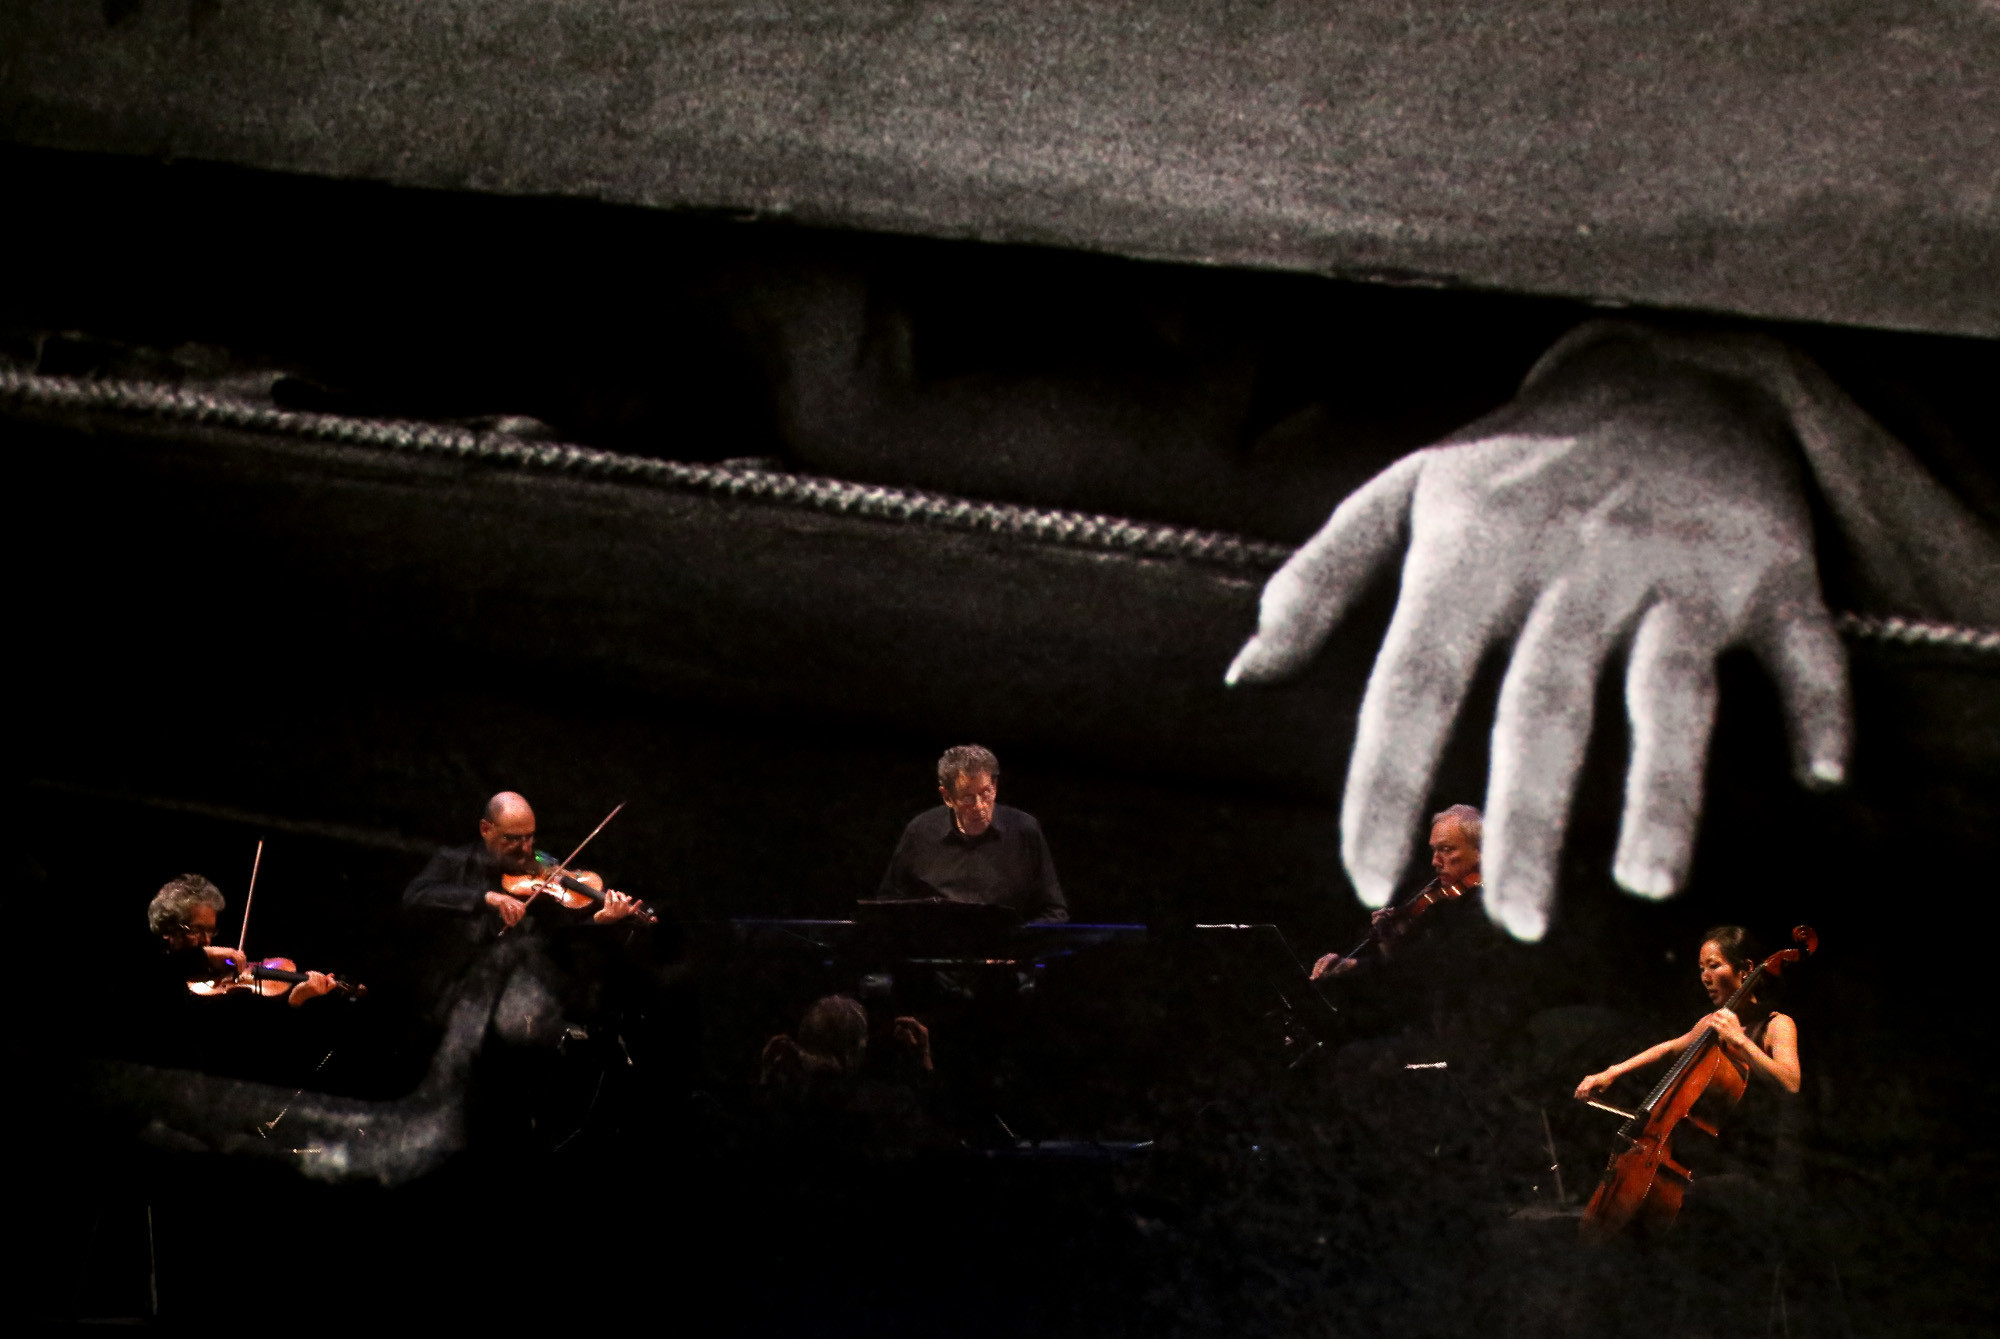 At times, the film's imagery overlaps with the musicians, to creepy effect.